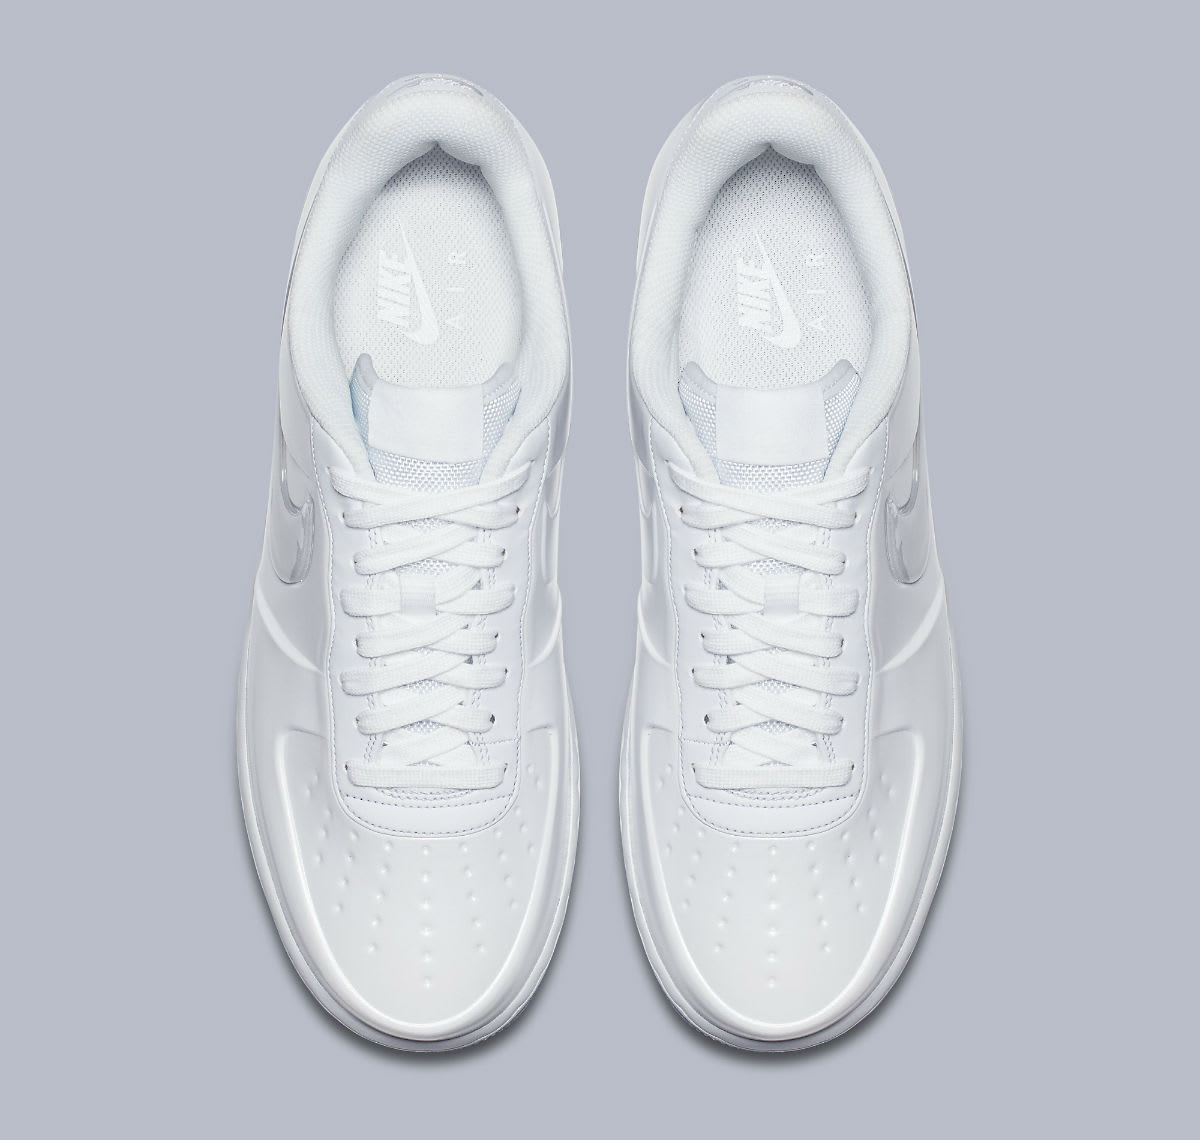 uk availability 6107a e872d Image via Nike Nike Air Force 1 Foamposite Pro Cup White Release Date AJ3664 -100 Top